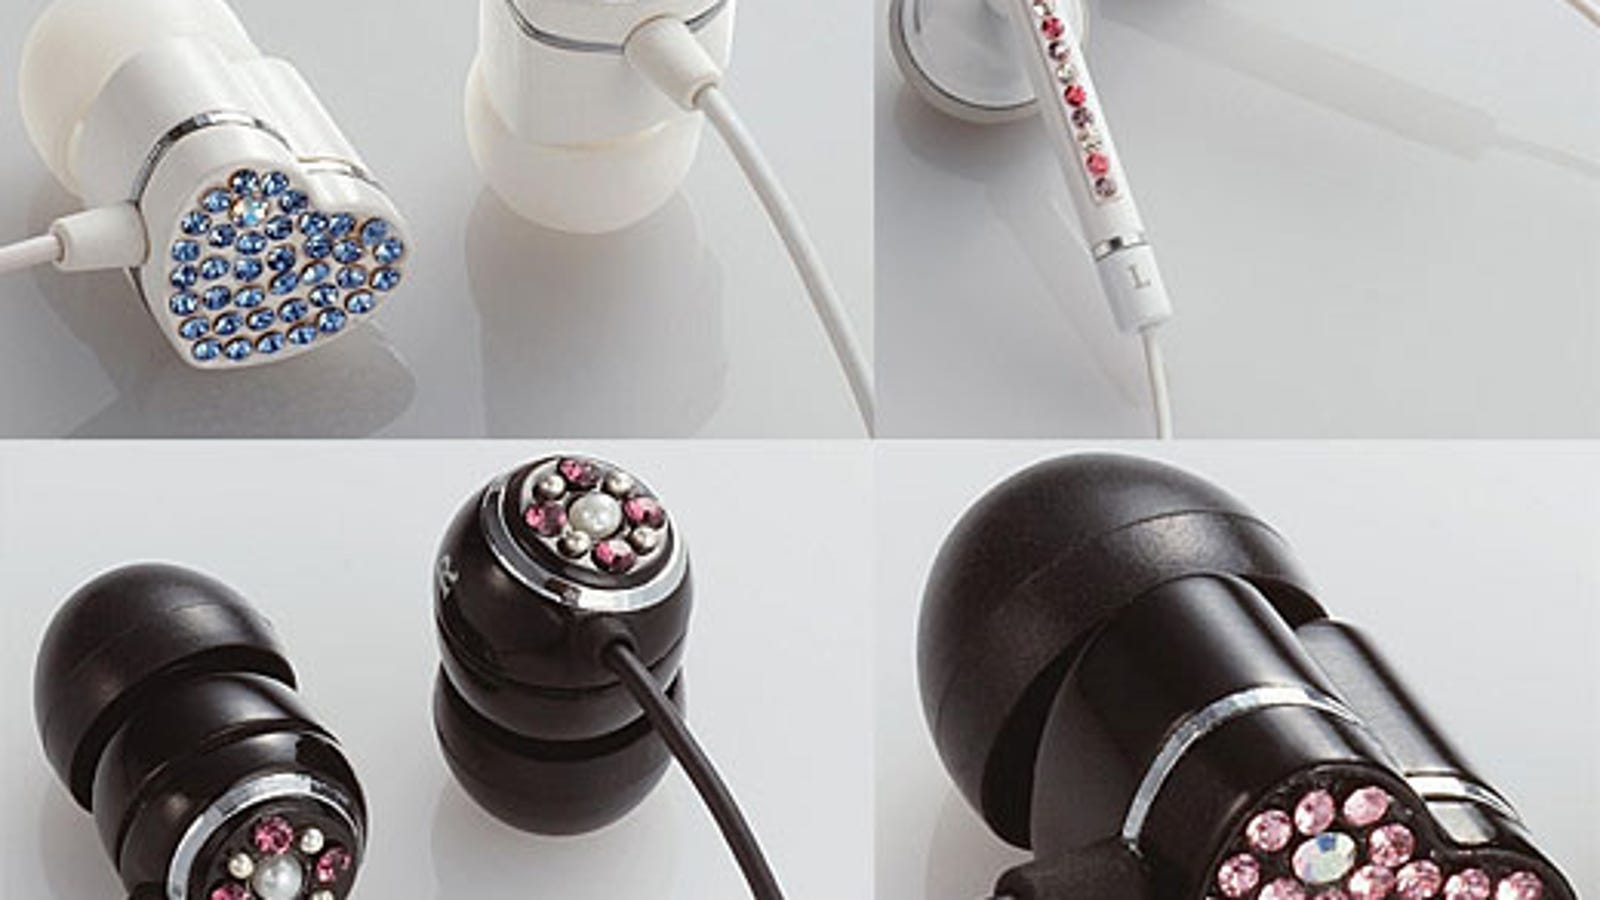 samsung galaxy s6 earbuds oem - Elecom Ear Drops Earphones: Cheap Hookers Listen to Music, Too